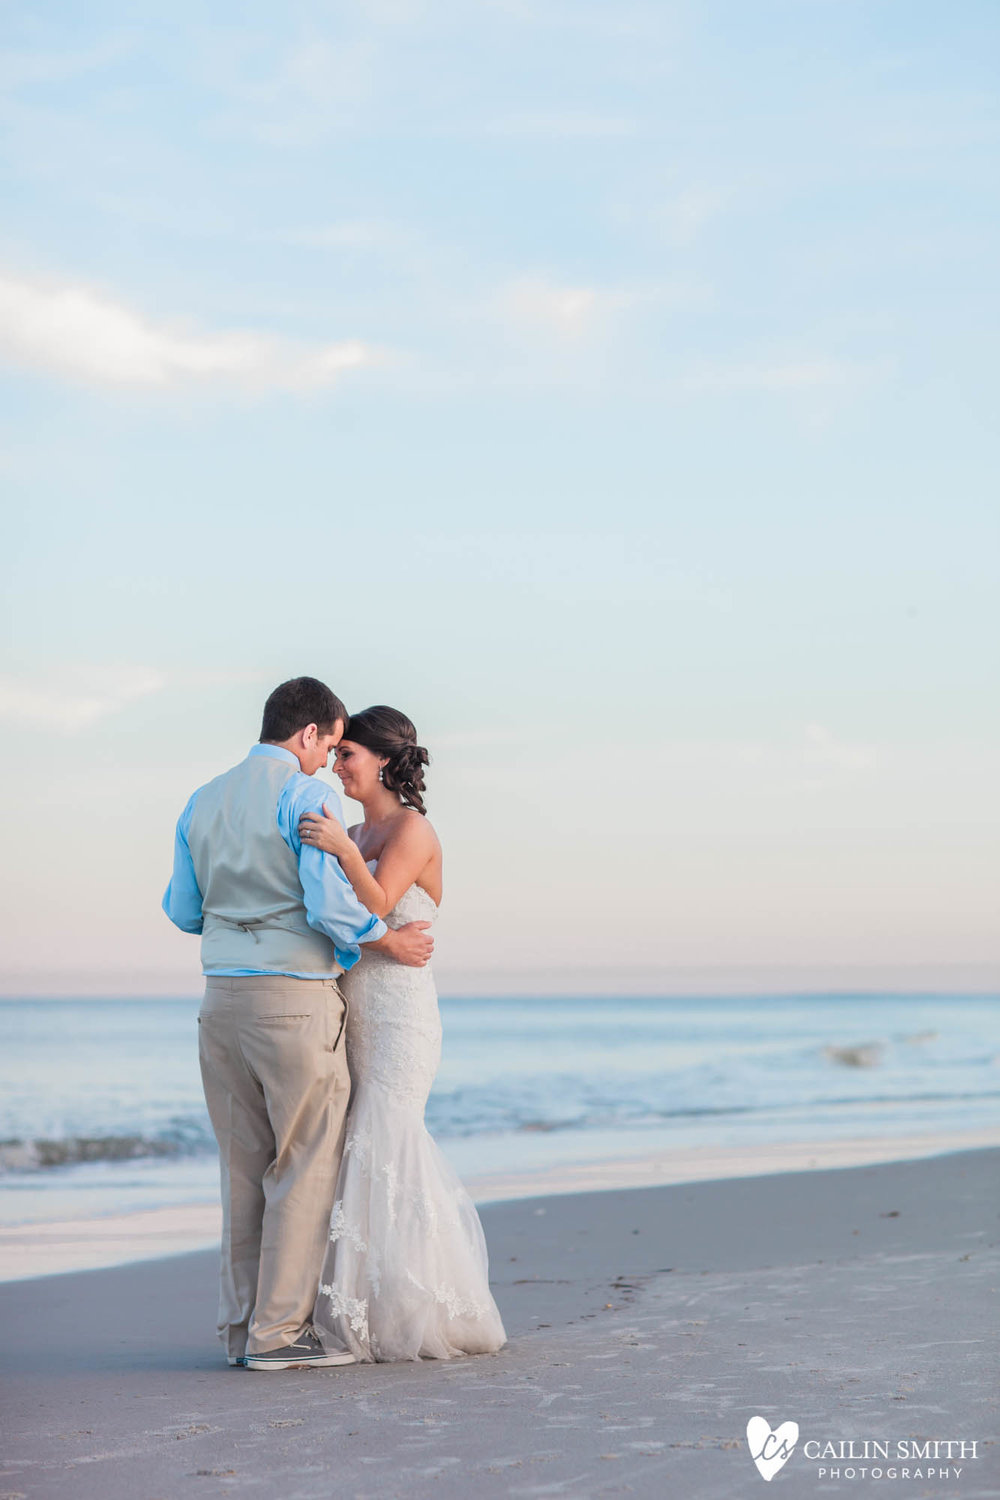 Kimberly_Ross_Amelia_Island_Wedding_Photography_044.jpg